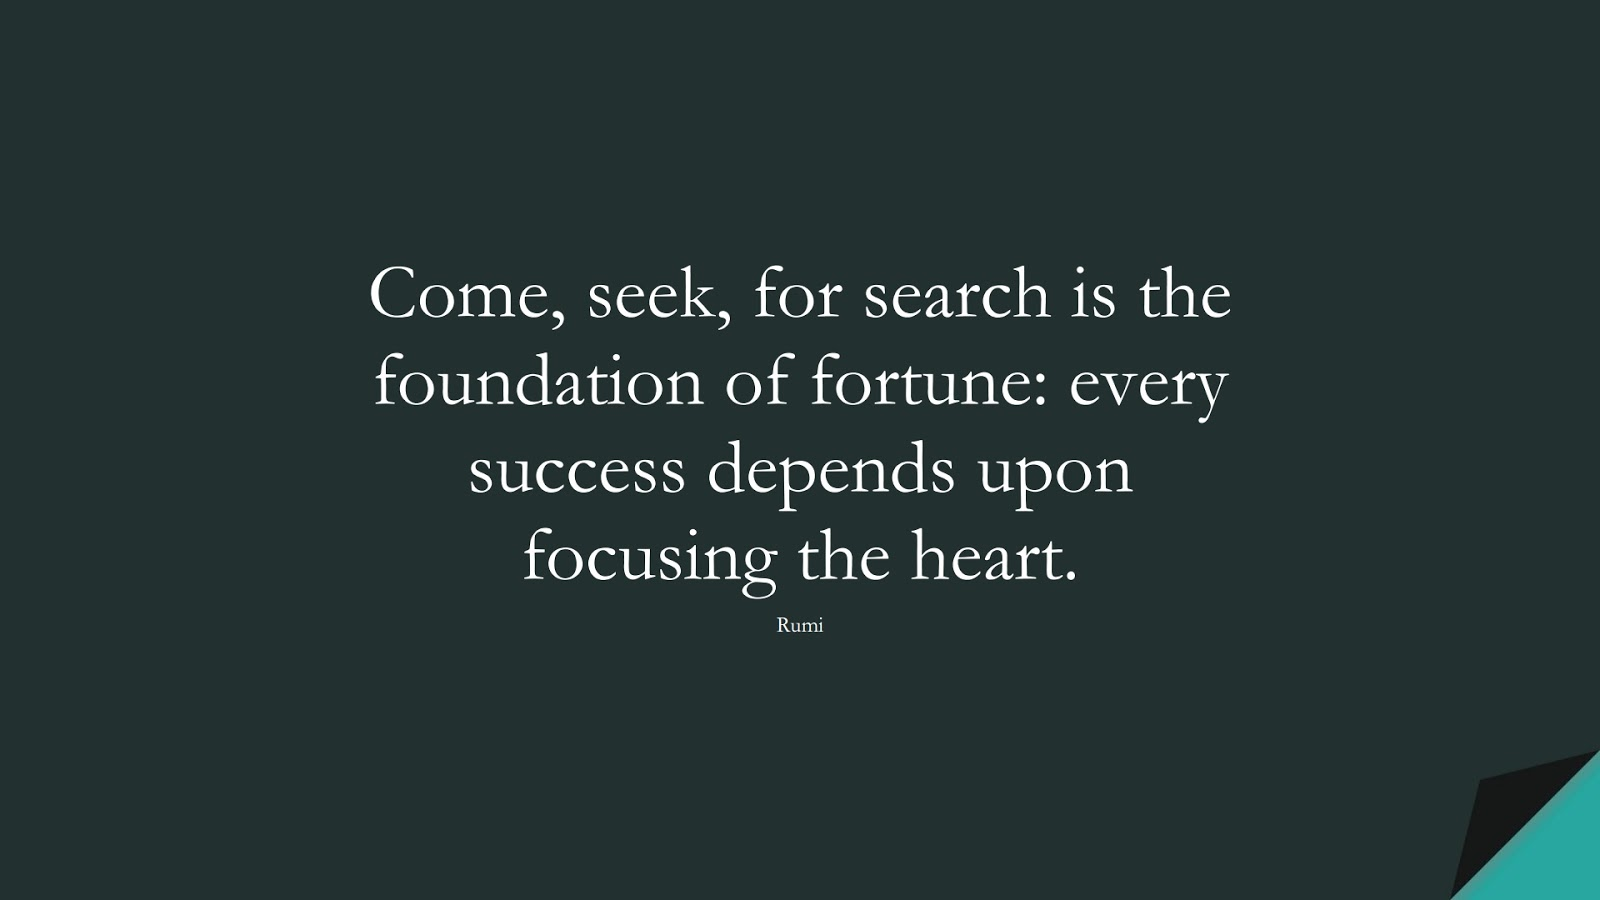 Come, seek, for search is the foundation of fortune: every success depends upon focusing the heart. (Rumi);  #CourageQuotes